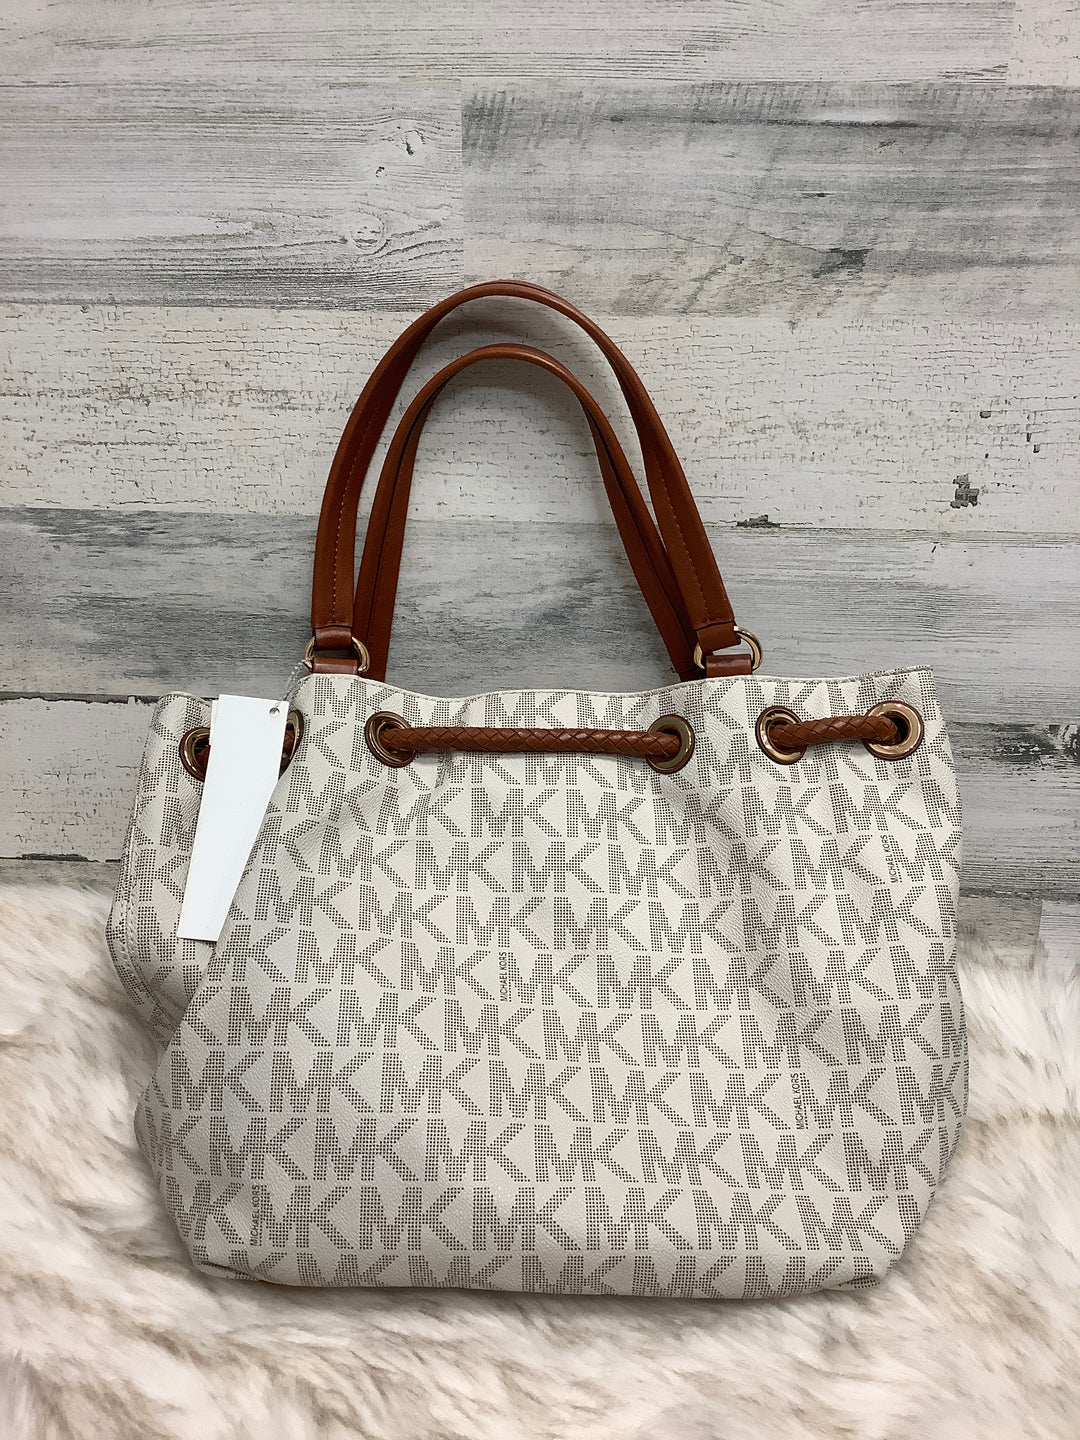 Photo #3 - BRAND: MICHAEL KORS <BR>STYLE: HANDBAG DESIGNER <BR>COLOR: WHITE <BR>SIZE: LARGE <BR>OTHER INFO: 30T3GTTT9B <BR>SKU: 153-15399-17329